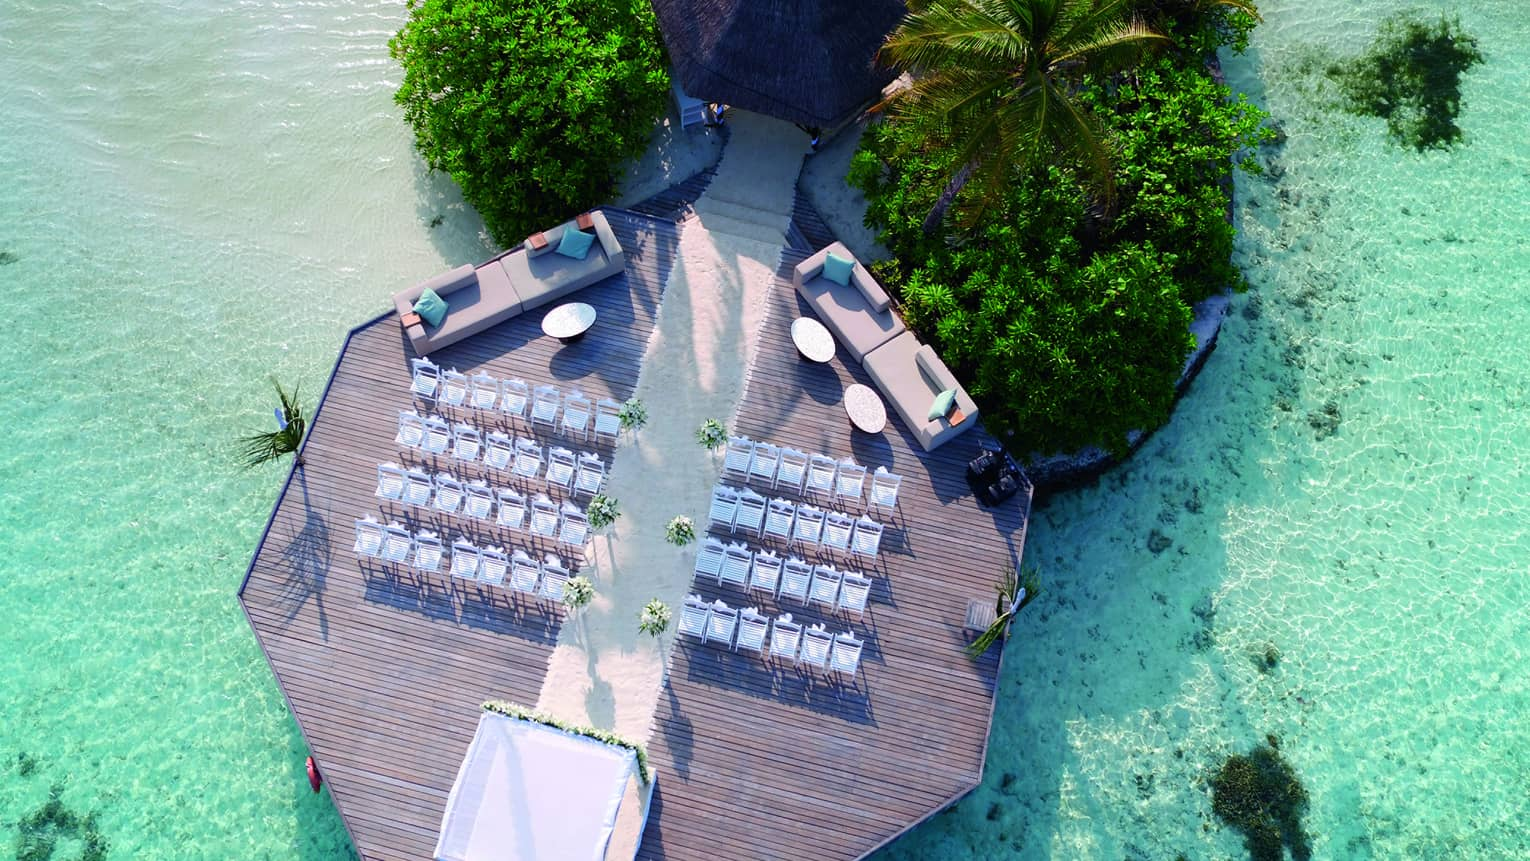 Aerial view of wedding ceremony, rows of white chairs on dock over lagoon